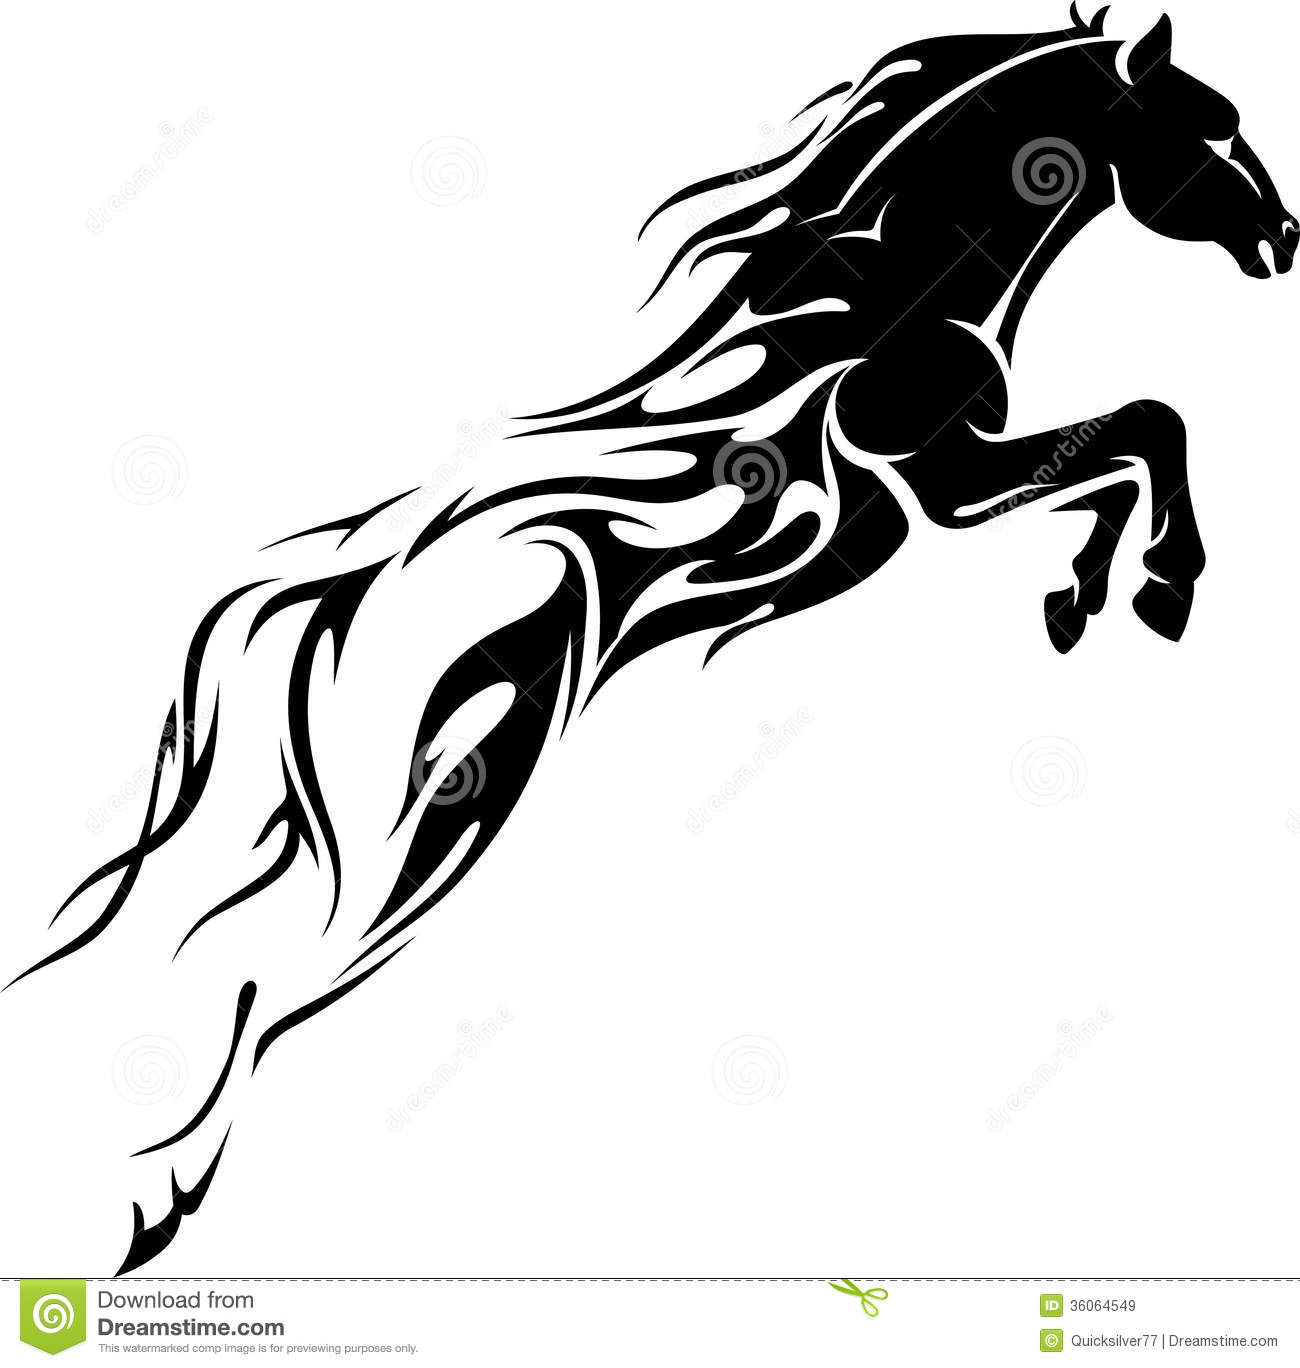 Diamond Ring Jewel Outline From Top View 39771 as well Horse Head Silhouette besides Horses Images Pictures further Stock Photos Film Strip Ribbon Image3699143 besides Images Libres De Droits Chevaux Vapeur Flamboyants Image36064549. on horse silhouette art